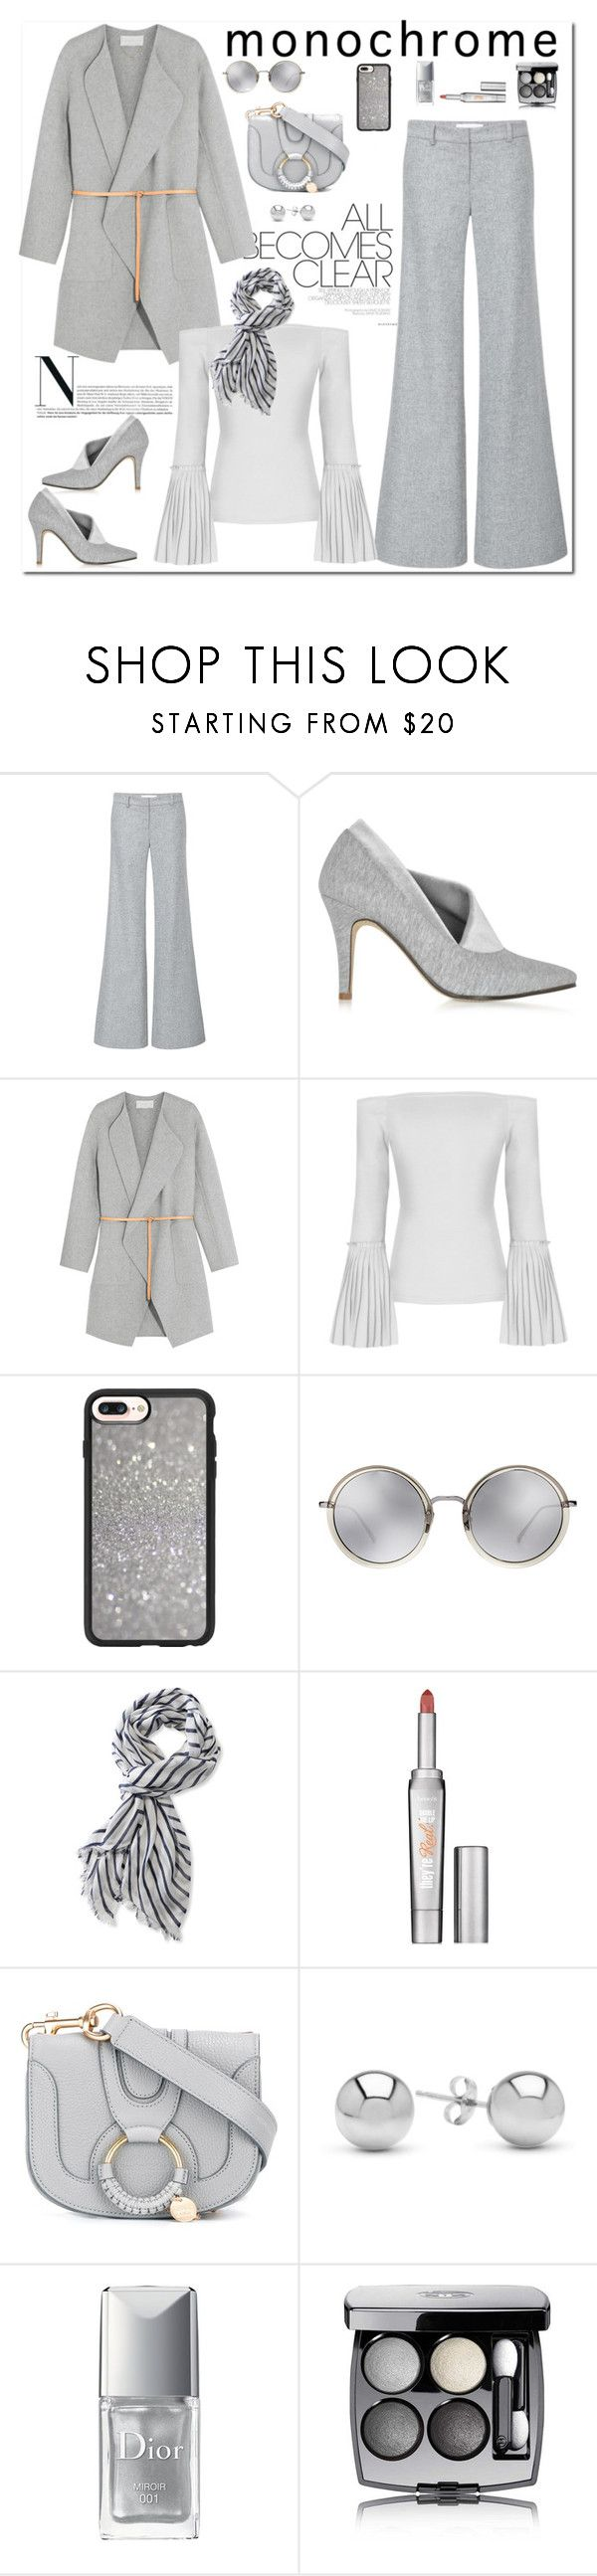 """""""One Color, Head to Toe"""" by ellie366 ❤ liked on Polyvore featuring Millà, Zoe Lee, Vanessa Bruno, Casetify, Linda Farrow, L.L.Bean, Benefit, See by Chloé, Jewelonfire and Christian Dior"""